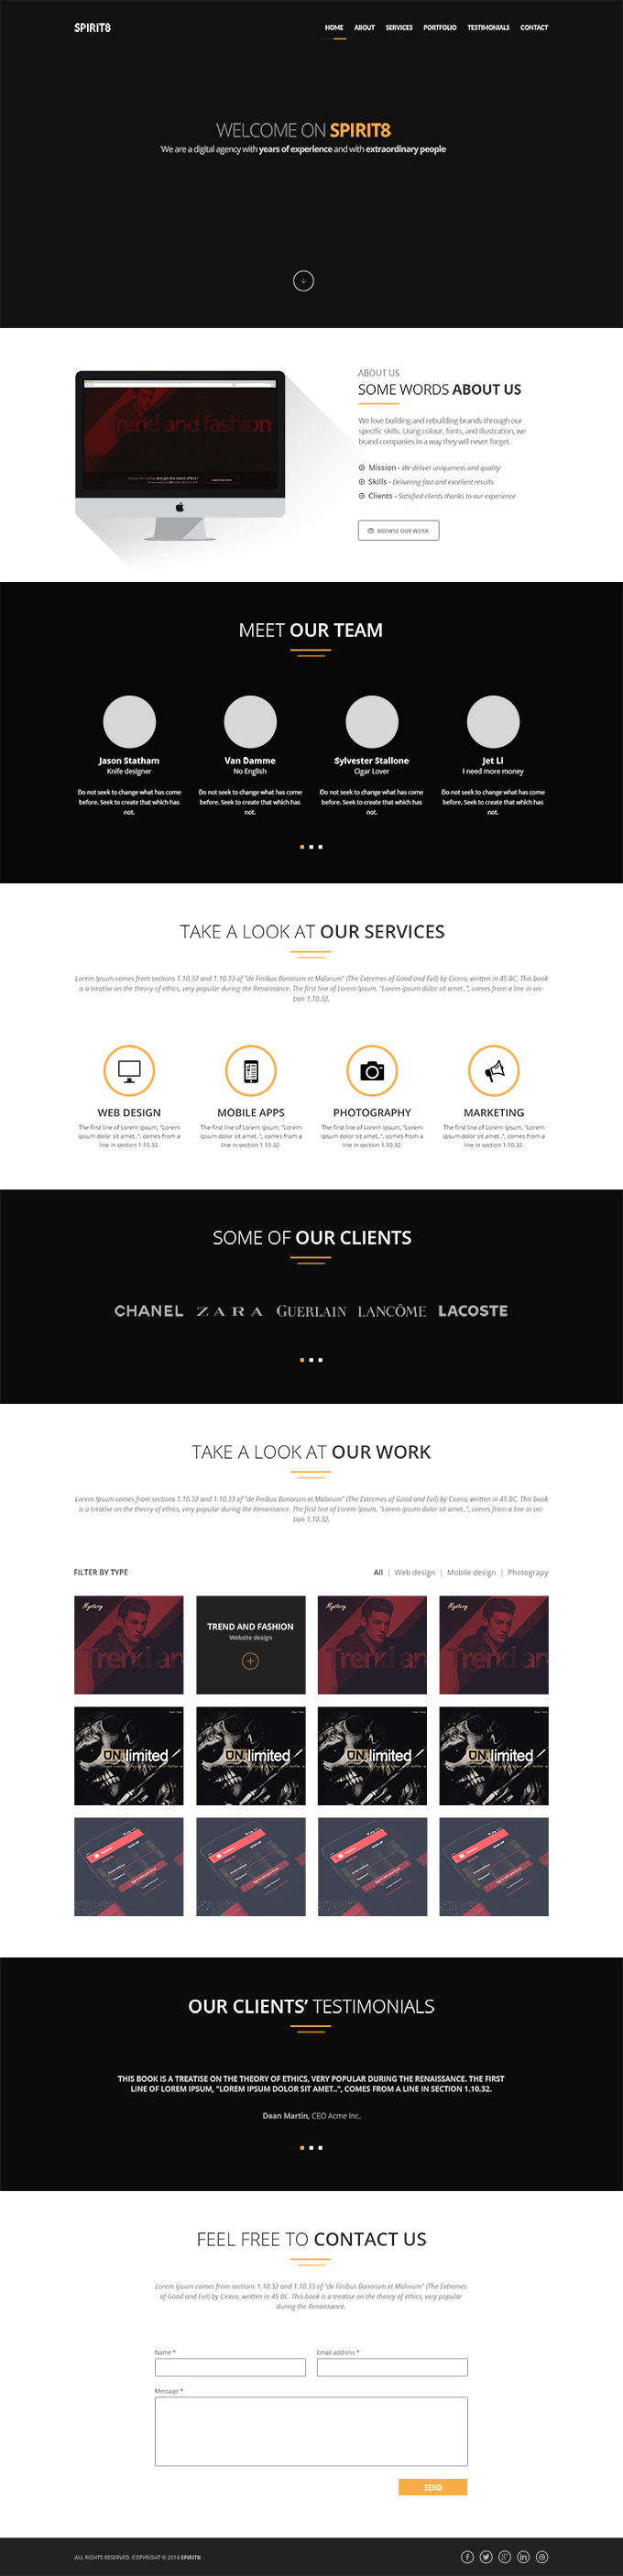 Spirit8 - Digital Agency One Page Template